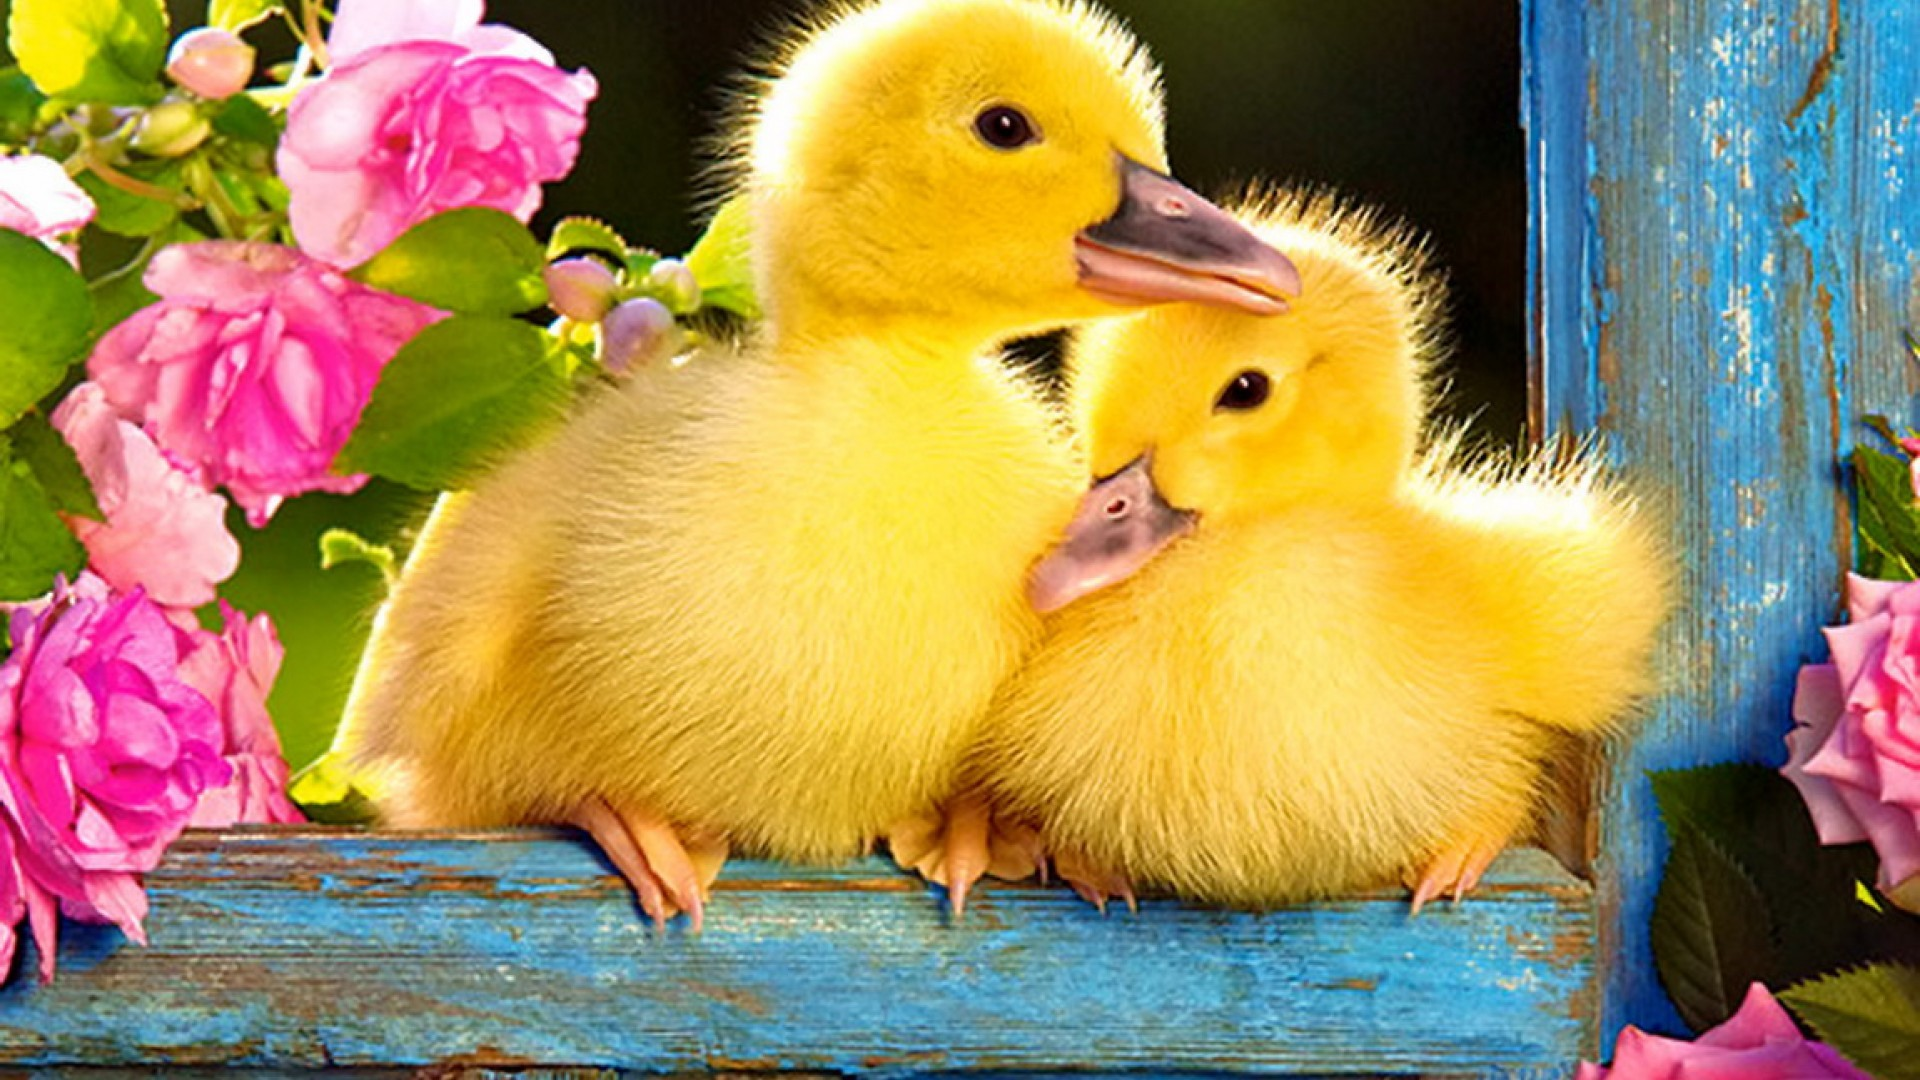 Res: 1920x1080, Baby Duck image & Wallpapers